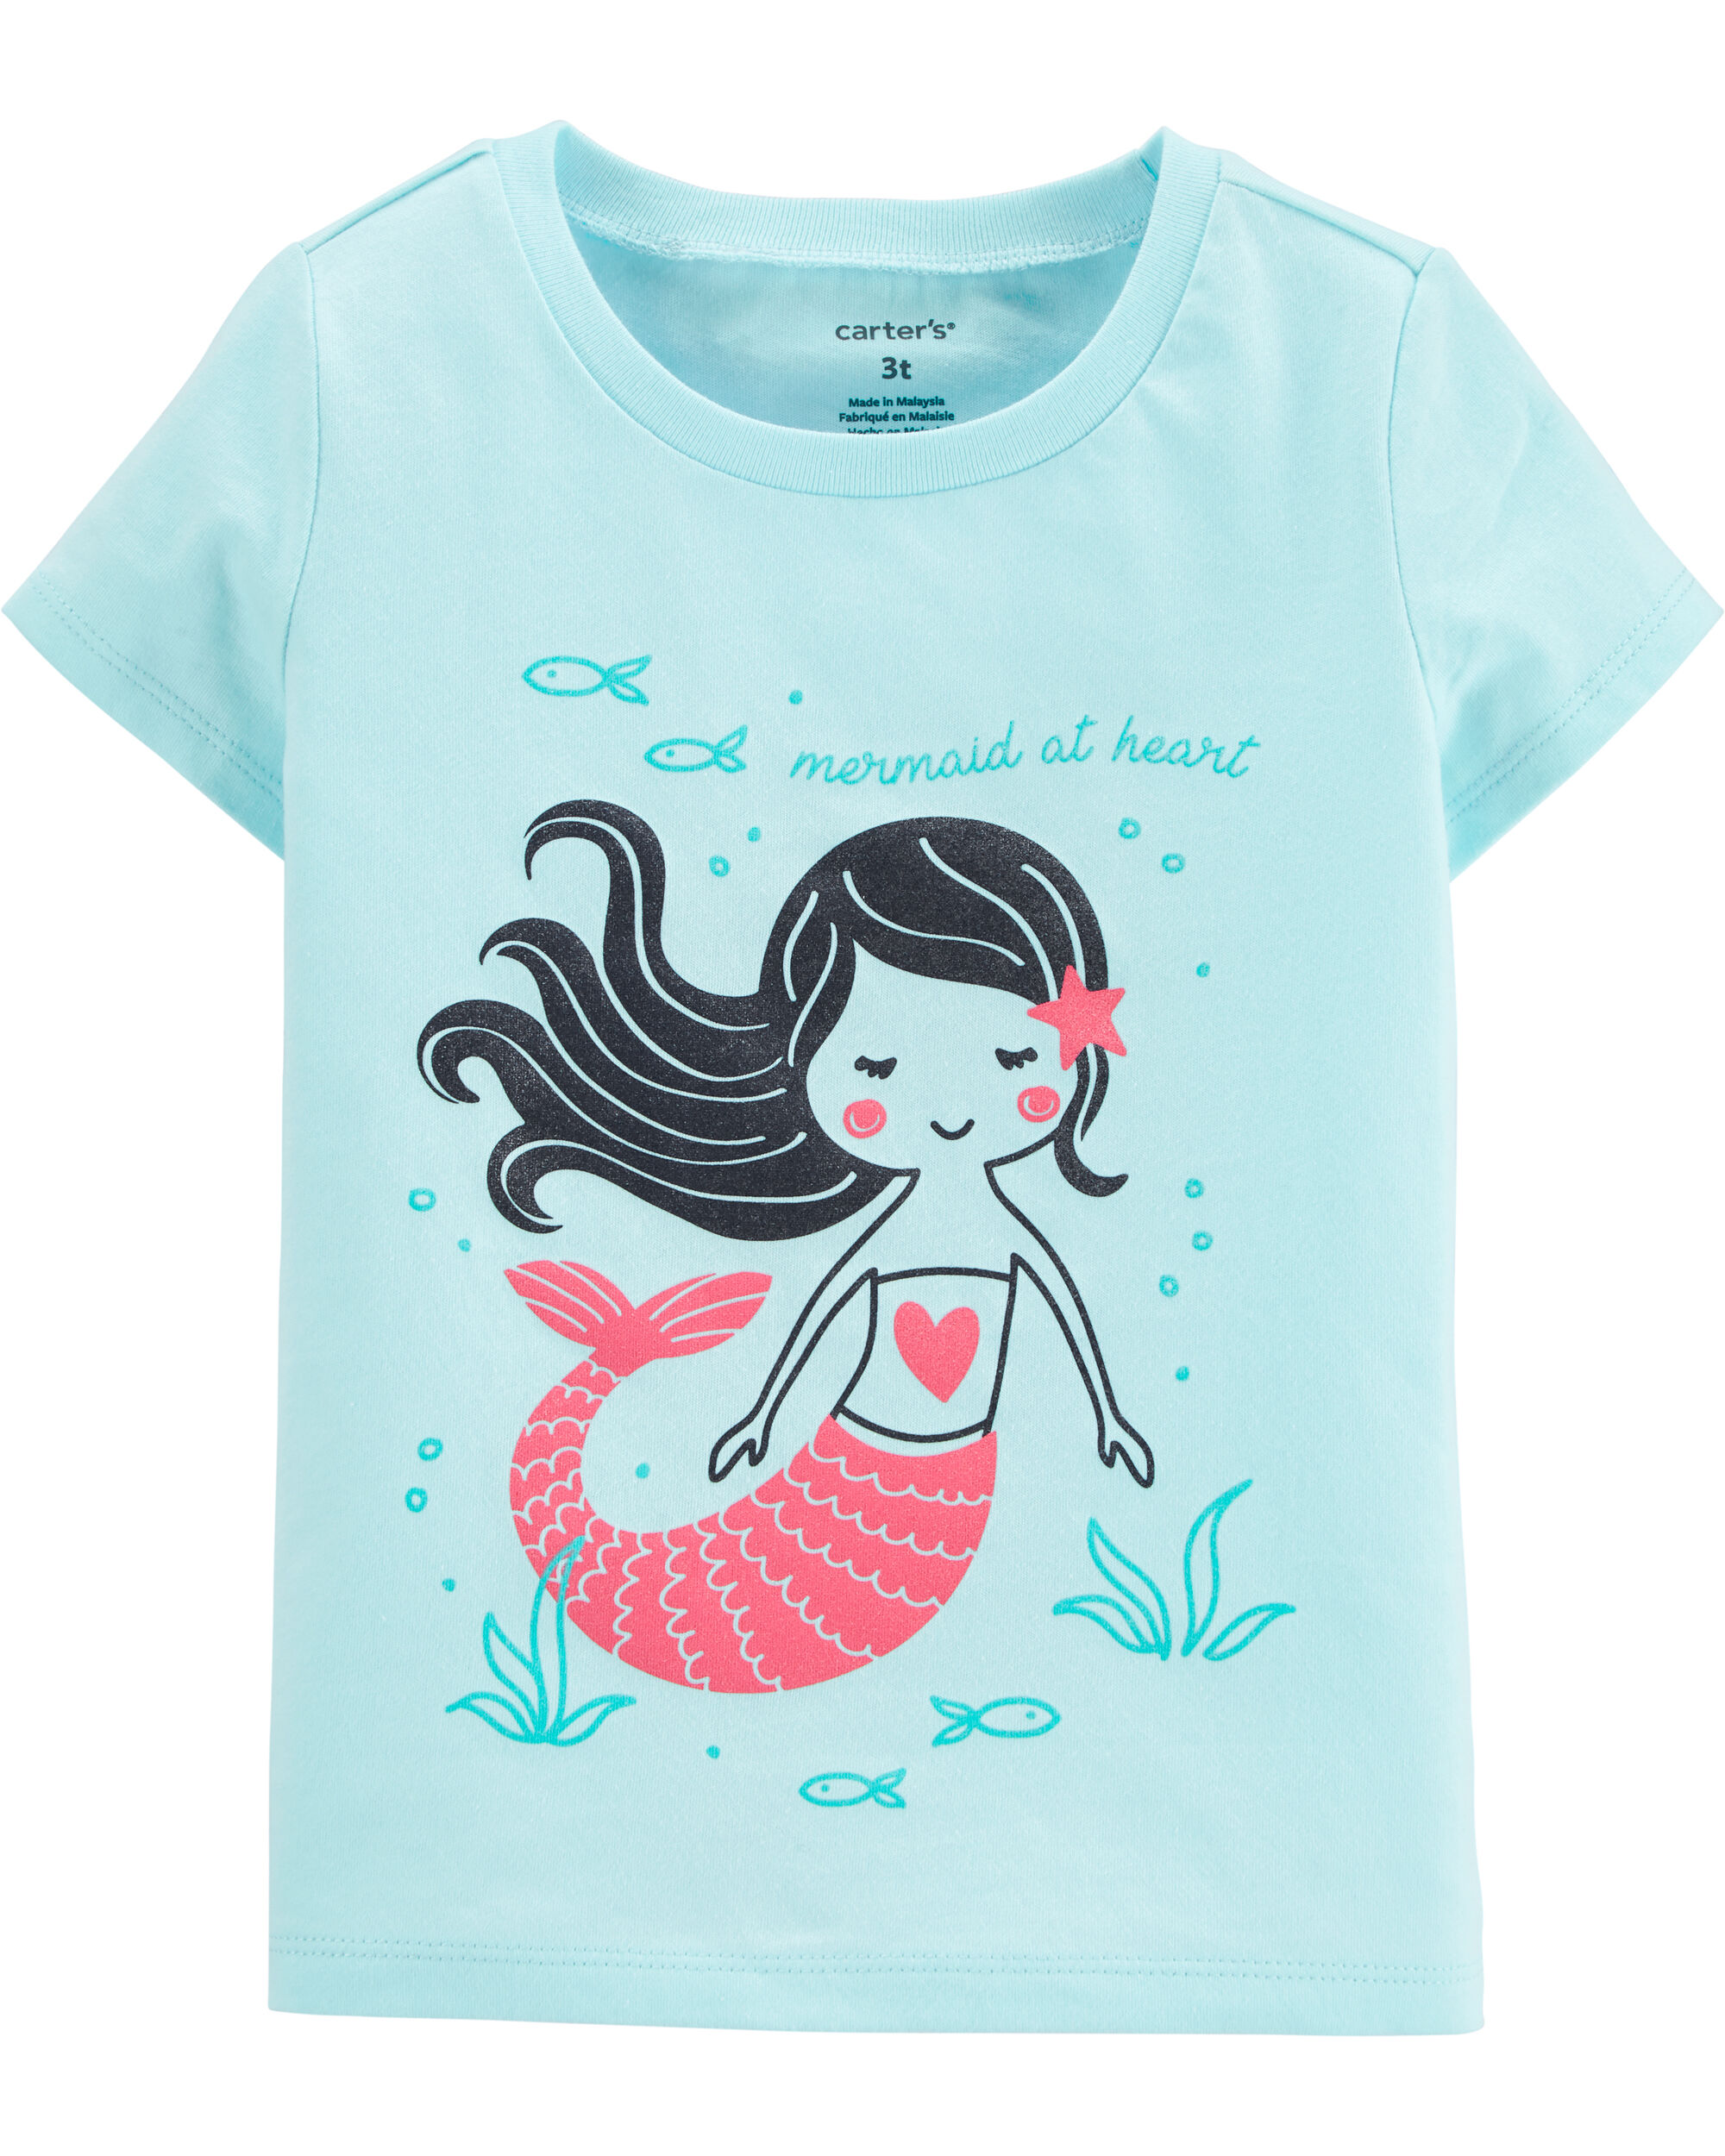 *DOORBUSTER* Mermaid At Heart Jersey Tee